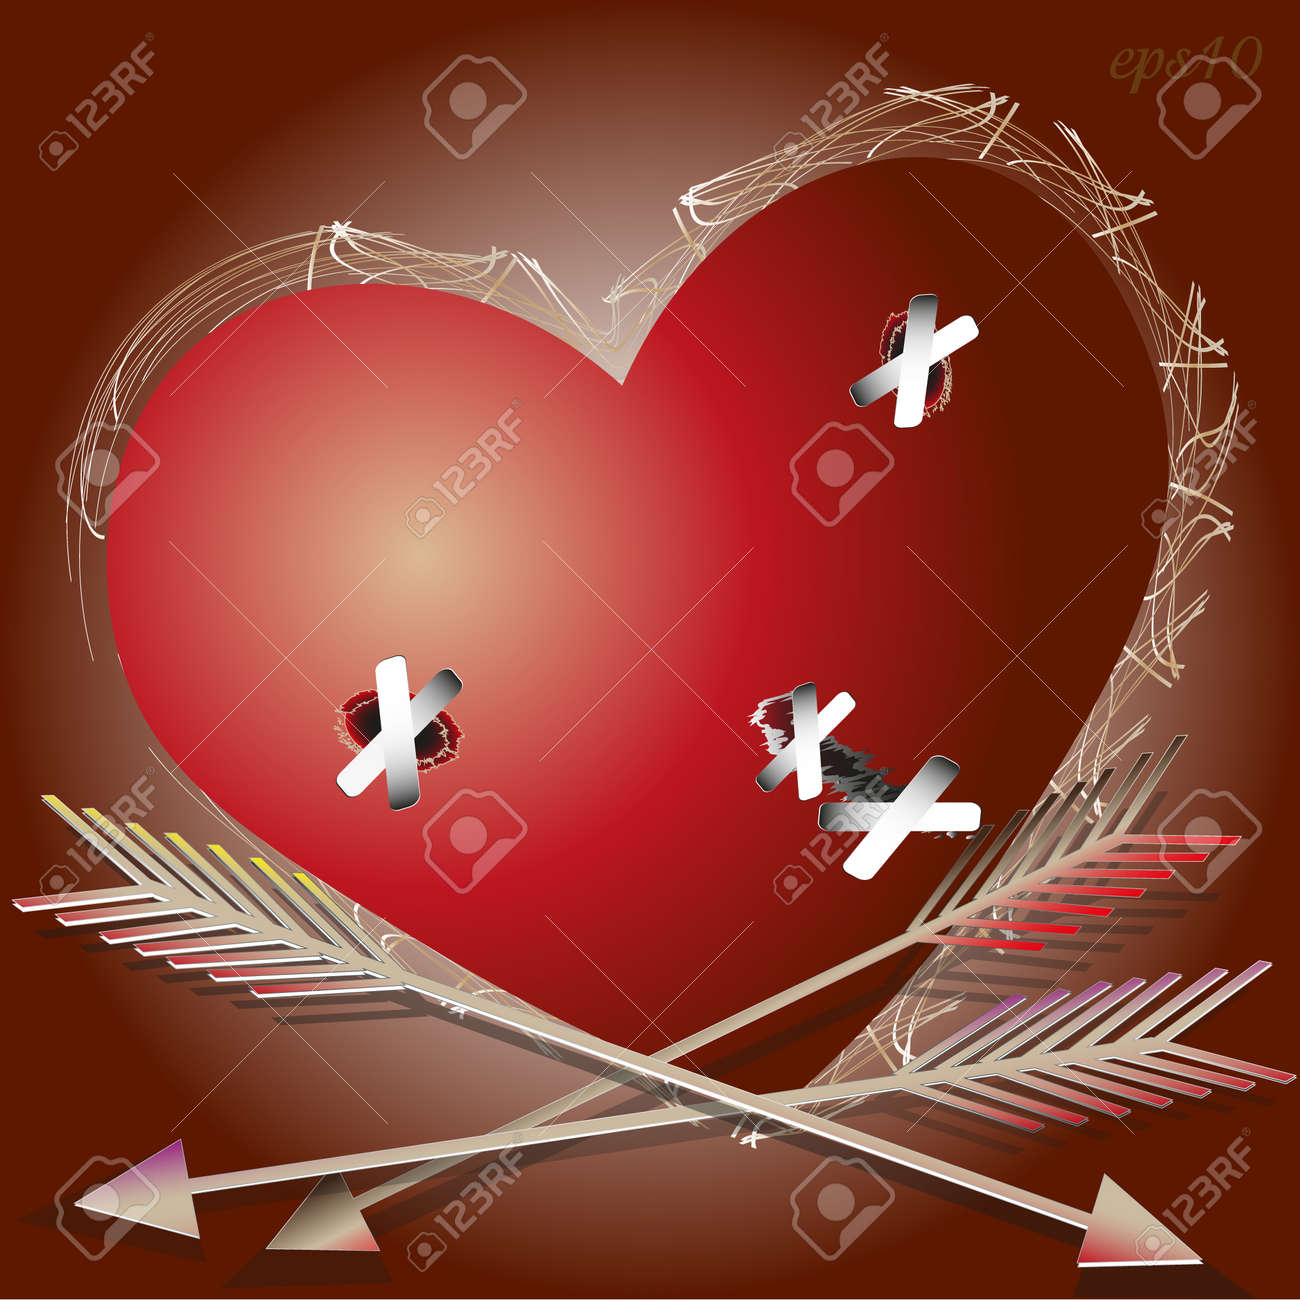 The Wounded Heart Abstract Valentine Greeting Card Writer Design